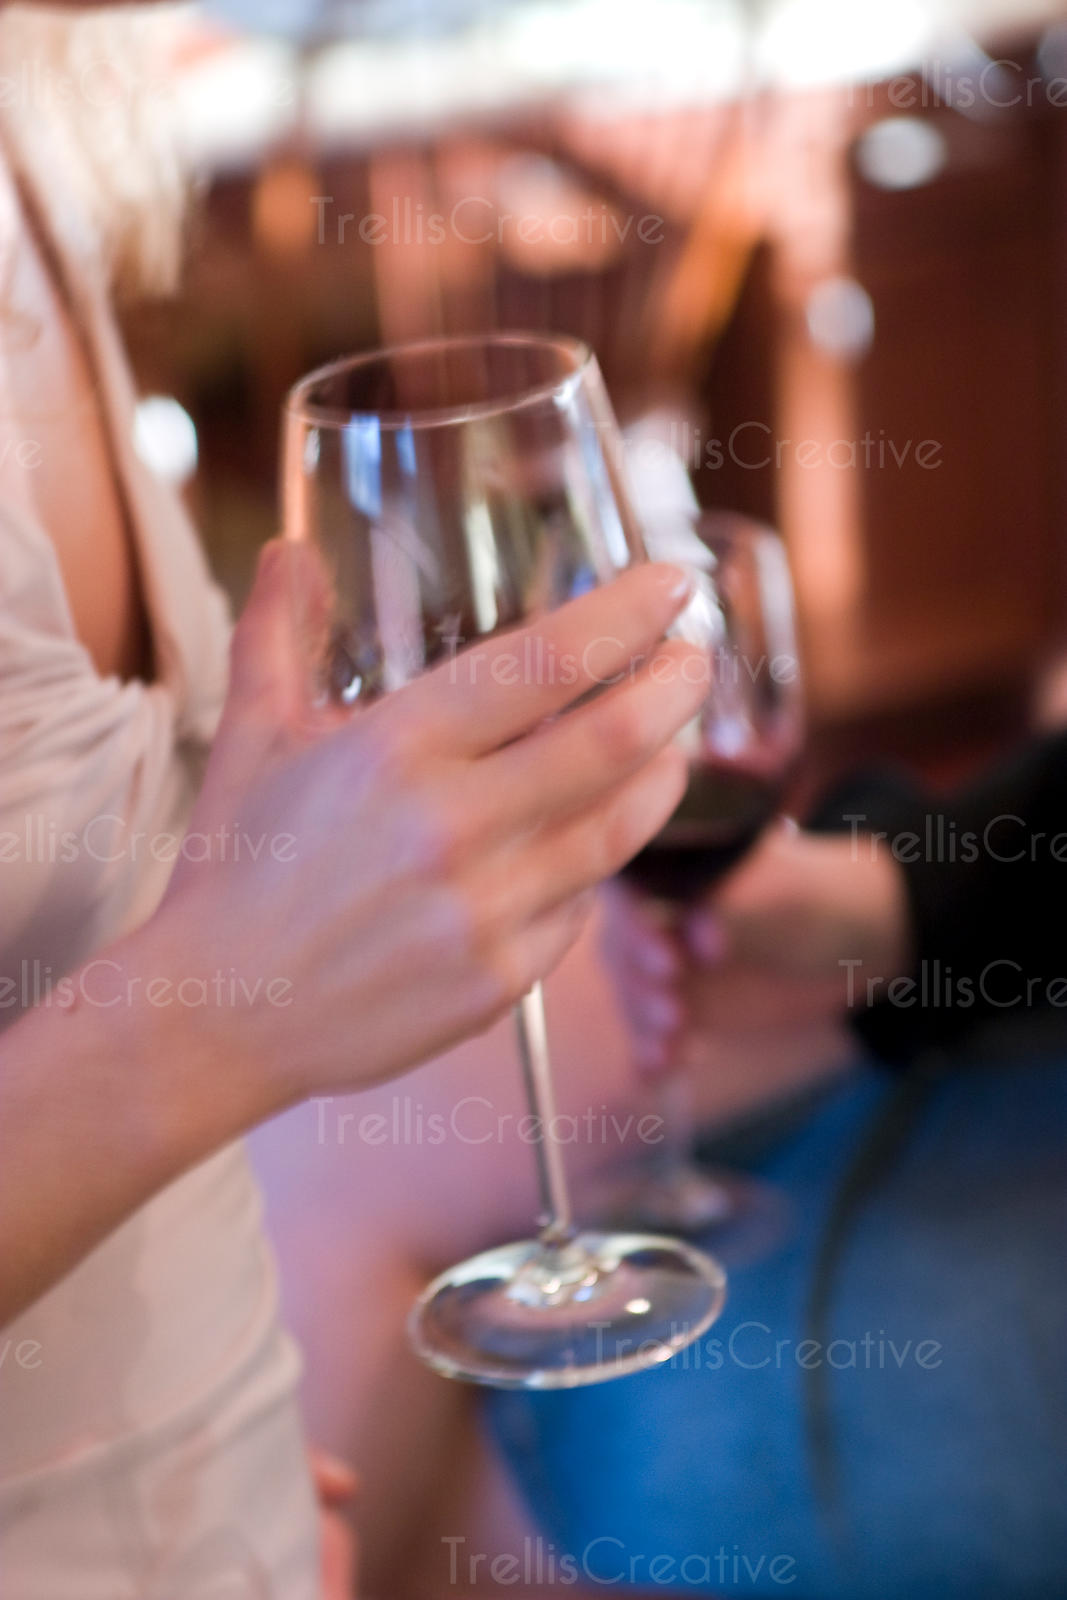 Close-up of a young woman's hand holding a glass of red wine